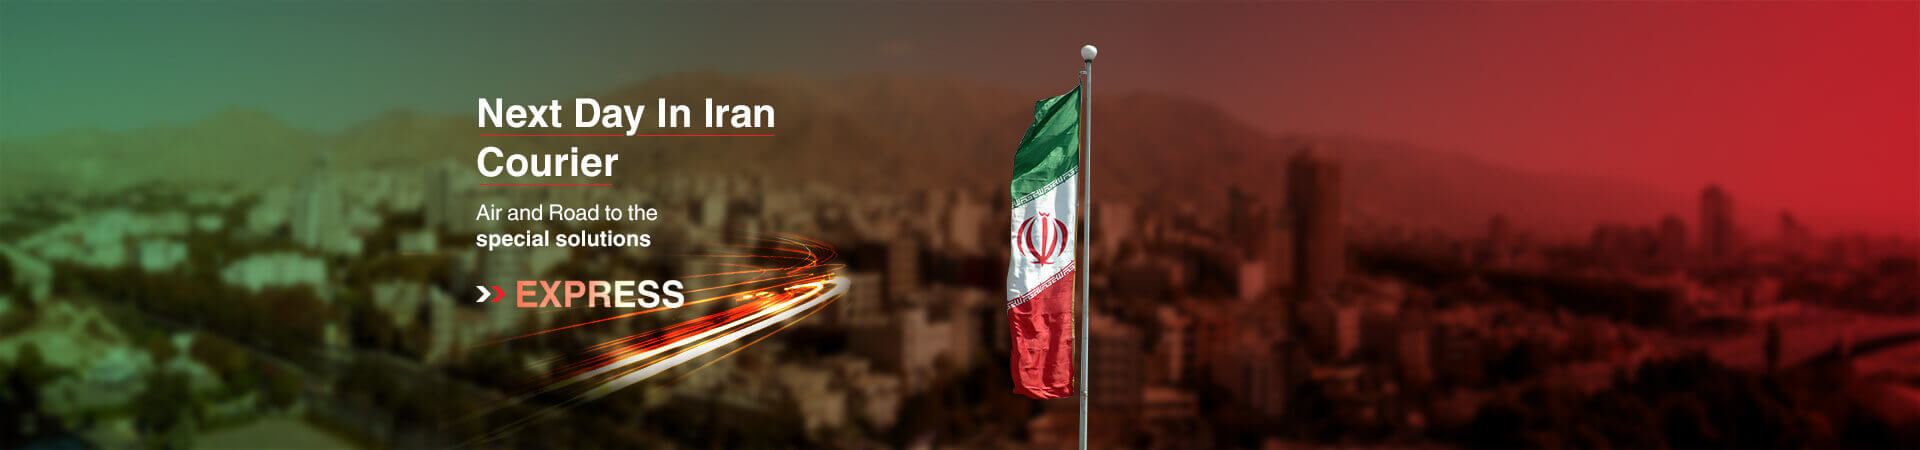 Next Day Iran..